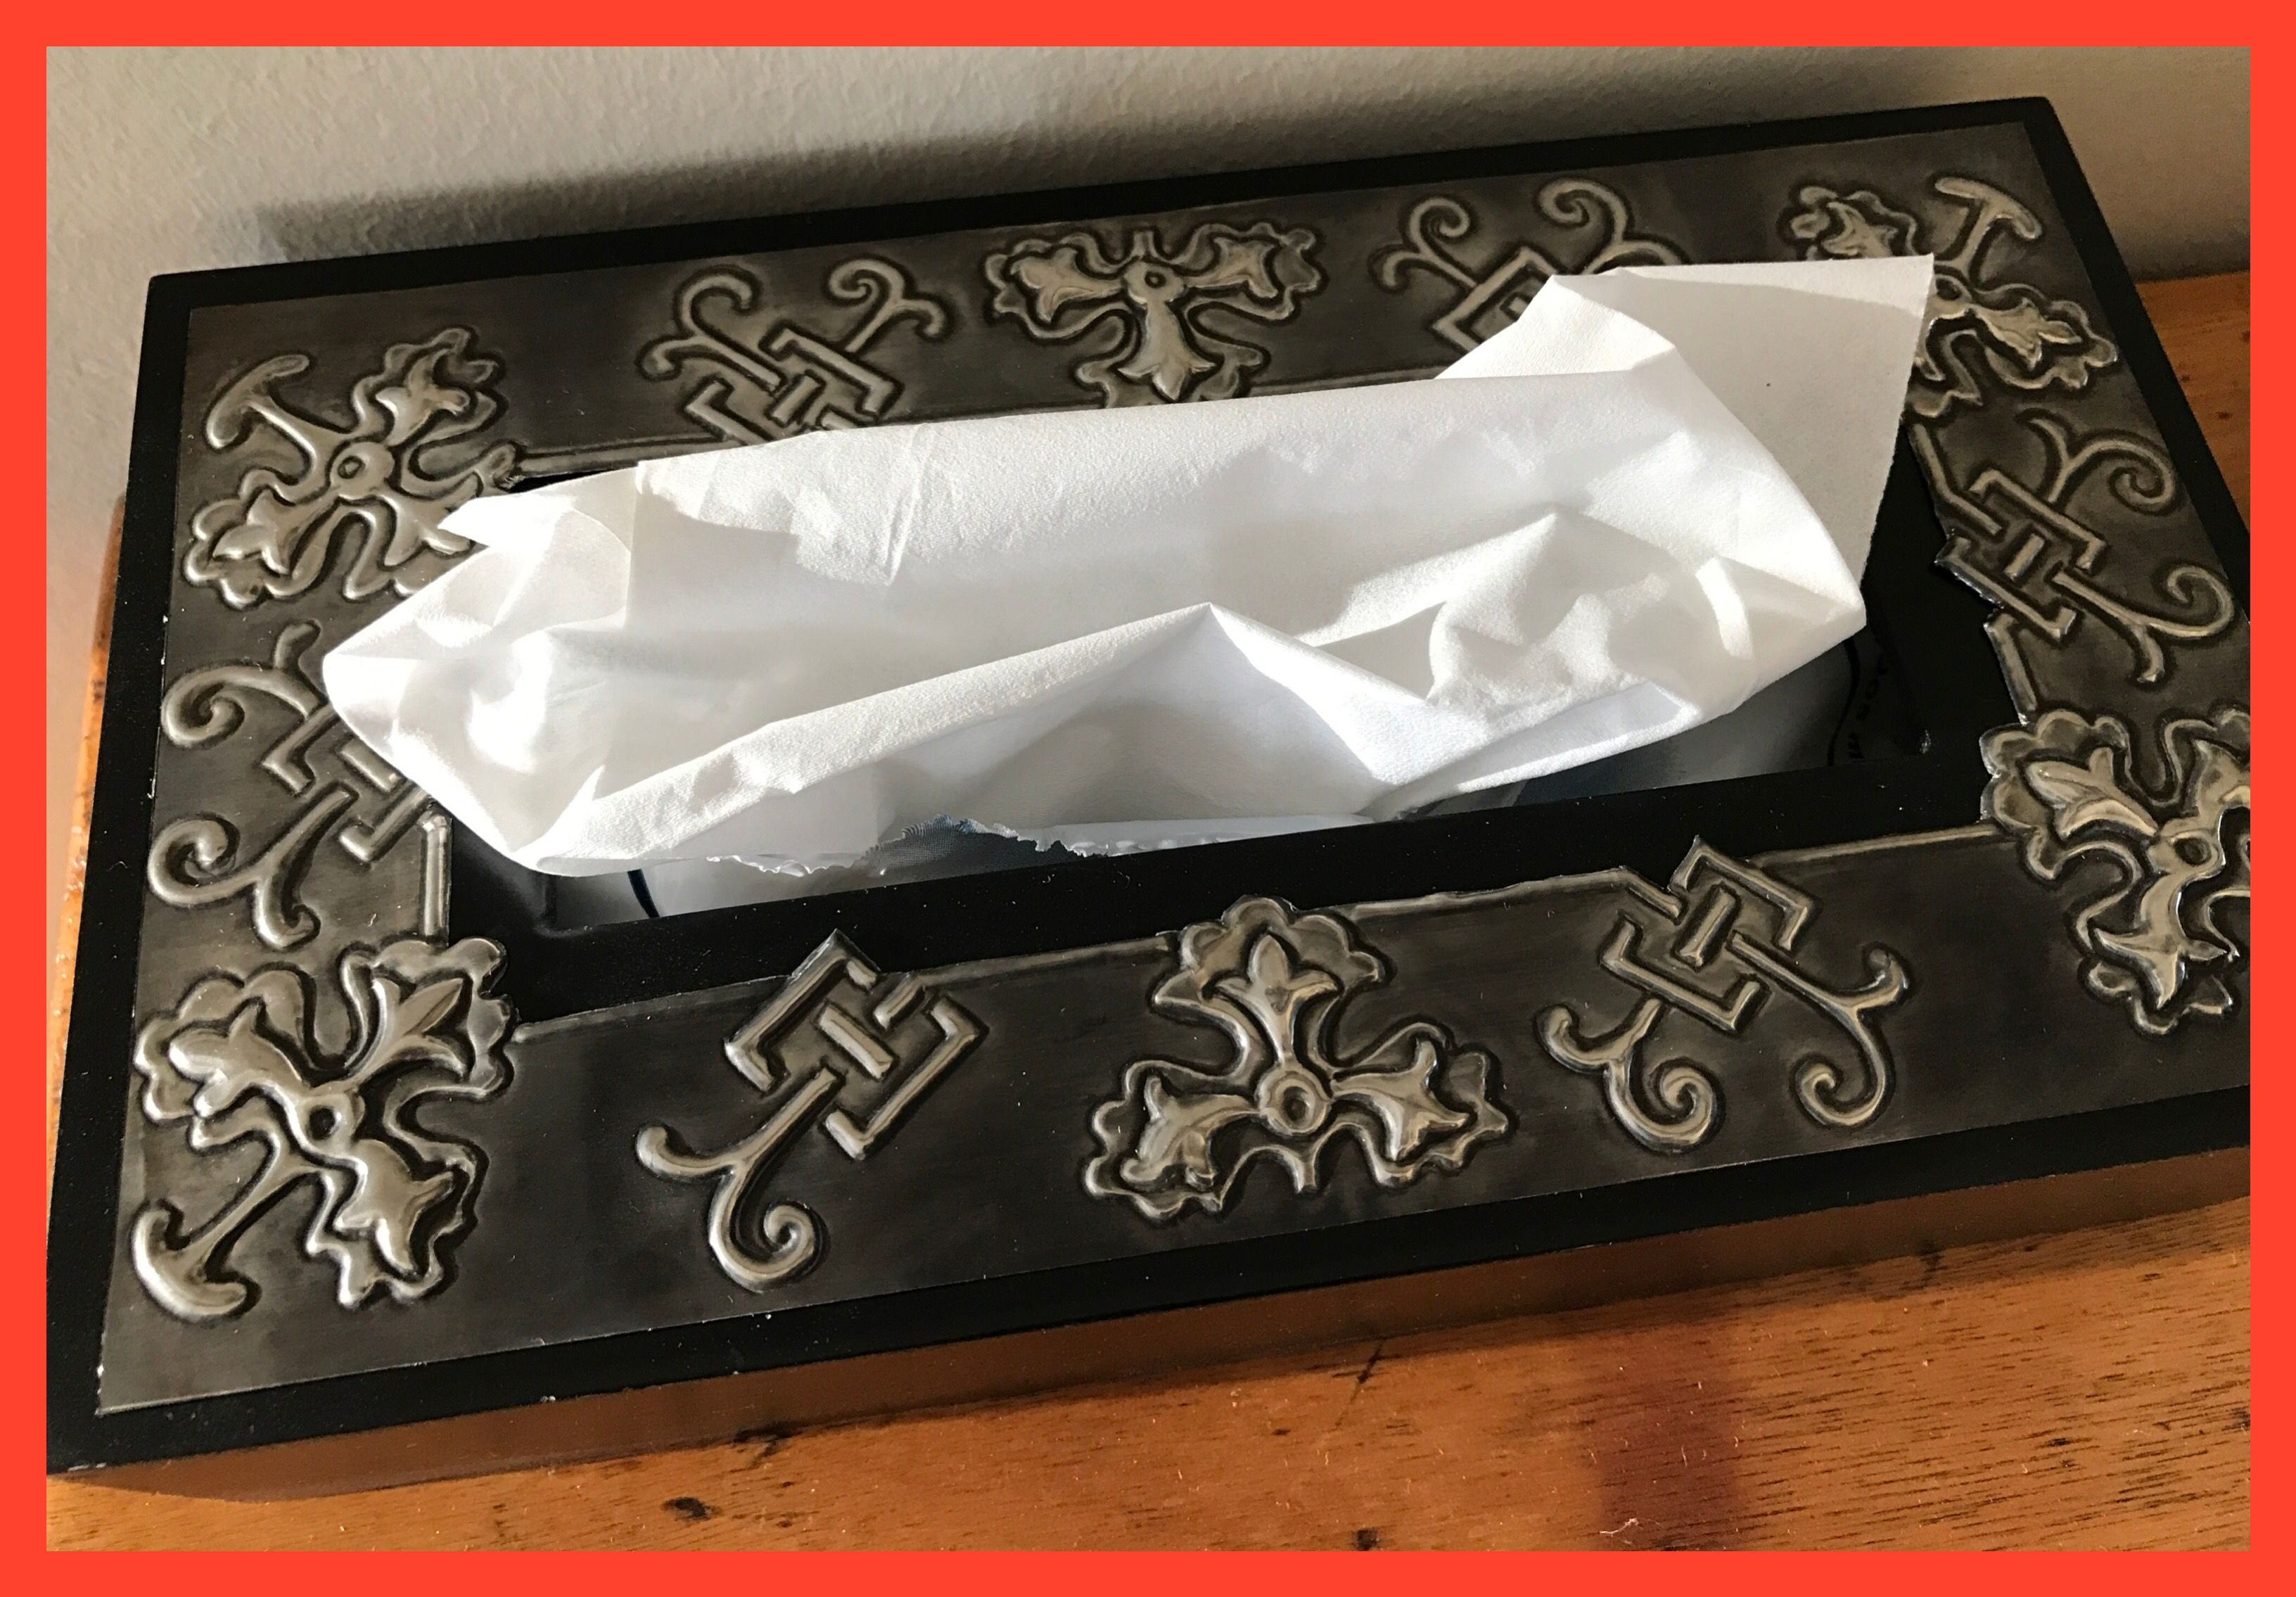 Embossed Pewter tissue box cover made my Lee @ The Pewter Room